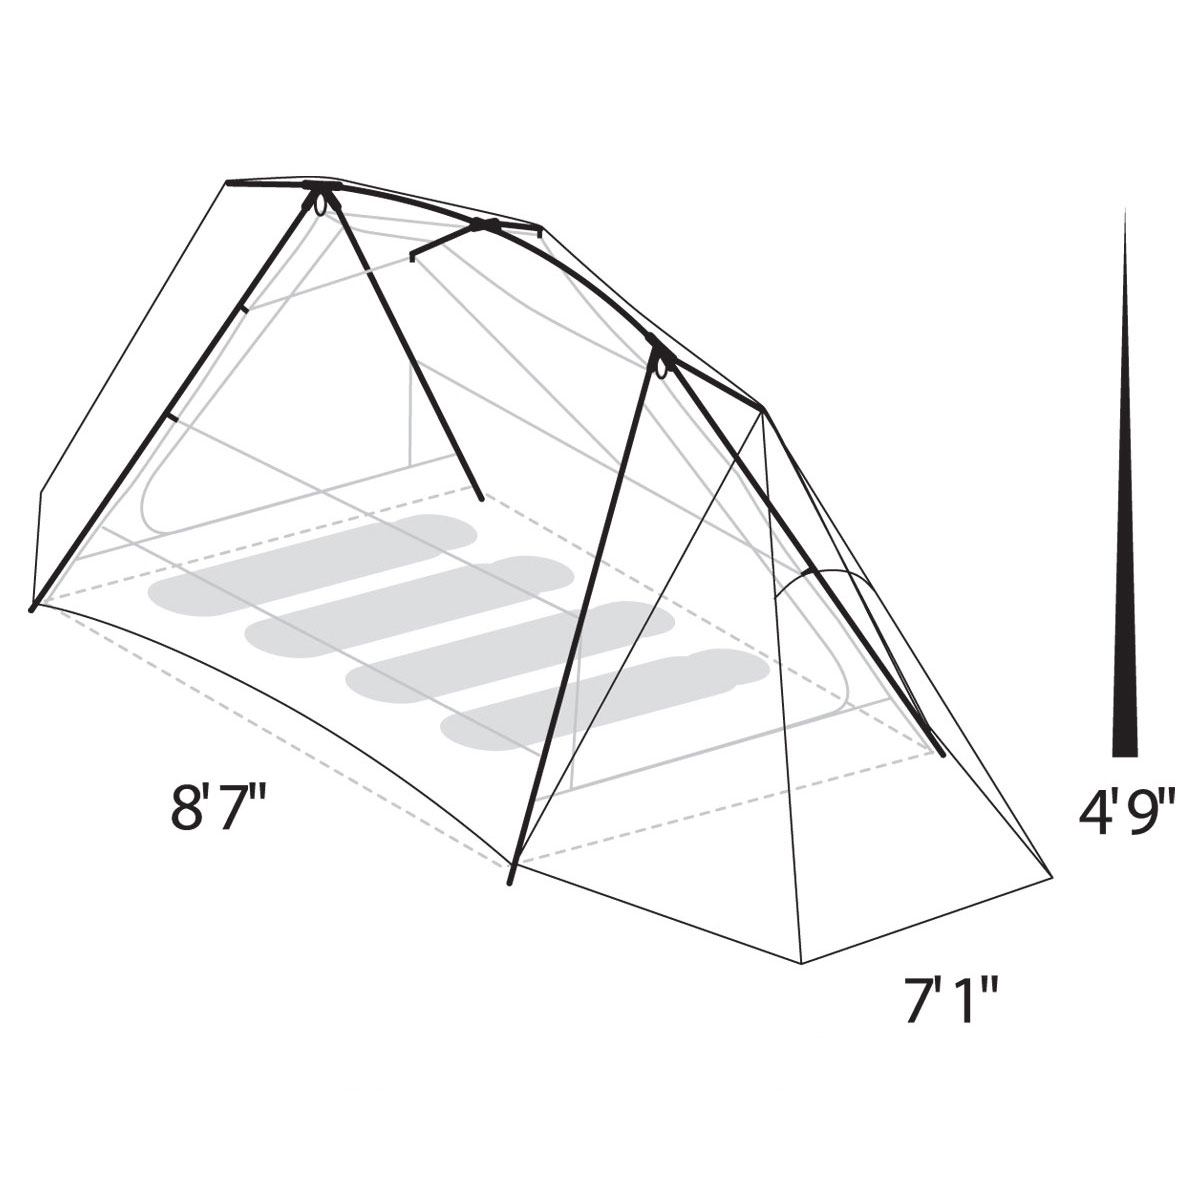 1  sc 1 st  Tents - Johnson Outdoors & Timberline® SQ 4XT 4 Person Tent | Eureka!